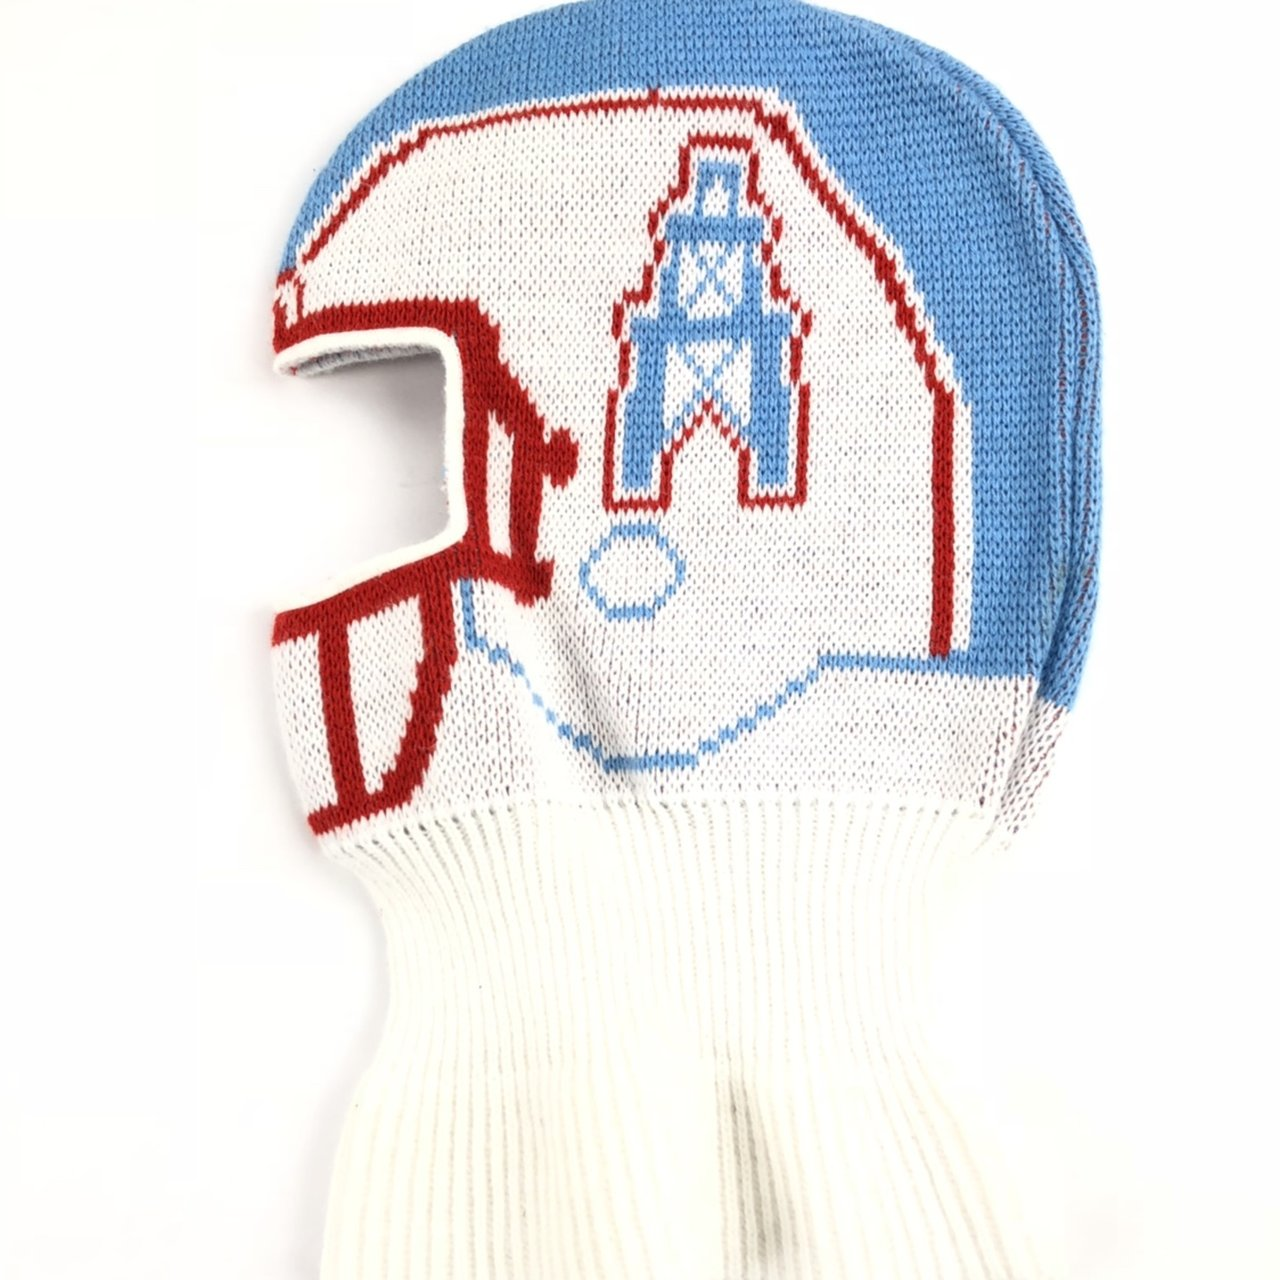 f5e408640e3 vtg Houston Oilers Titans NFL 90s Game Face Knit Ski Mask - Depop